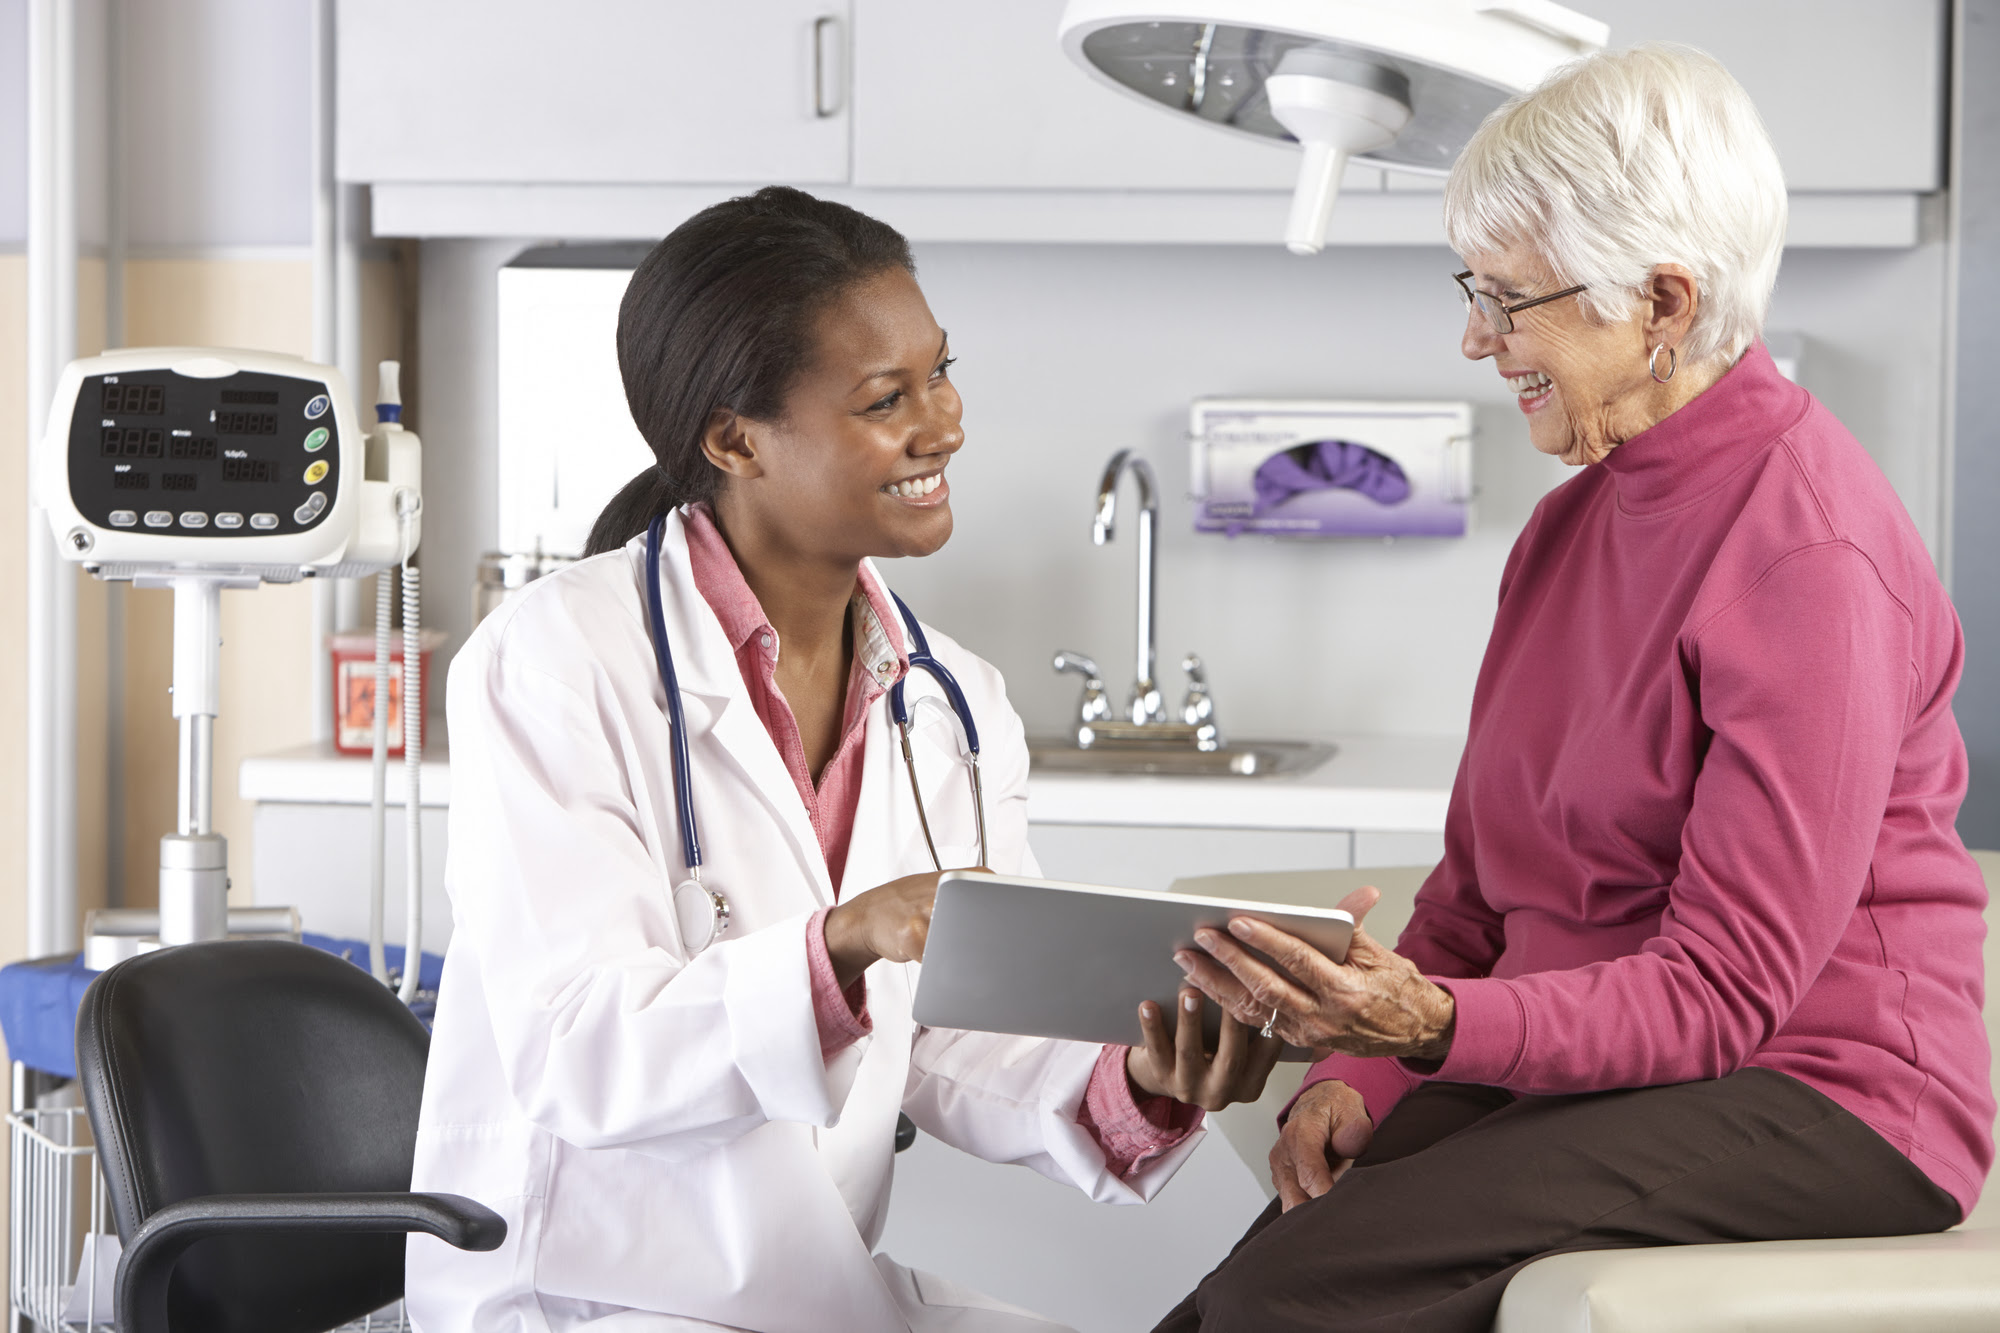 Guide to Improving Patient Safety in Primary Care Settings by Engaging Patients